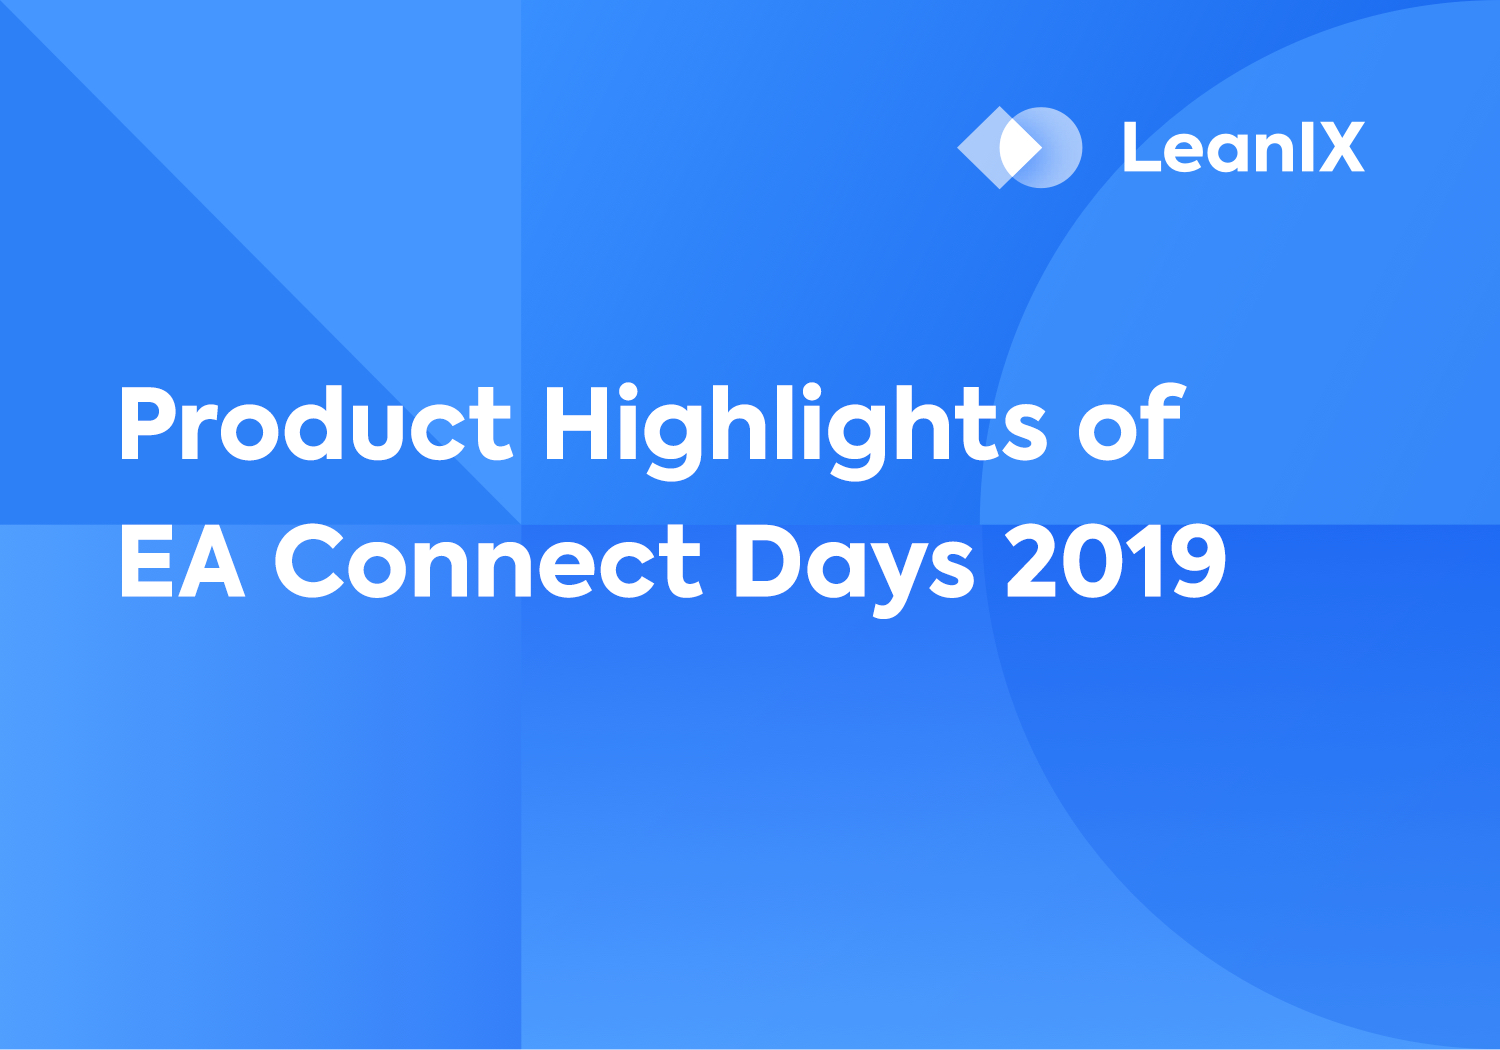 Presentation: Product Highlights of EA Connect Days 2019